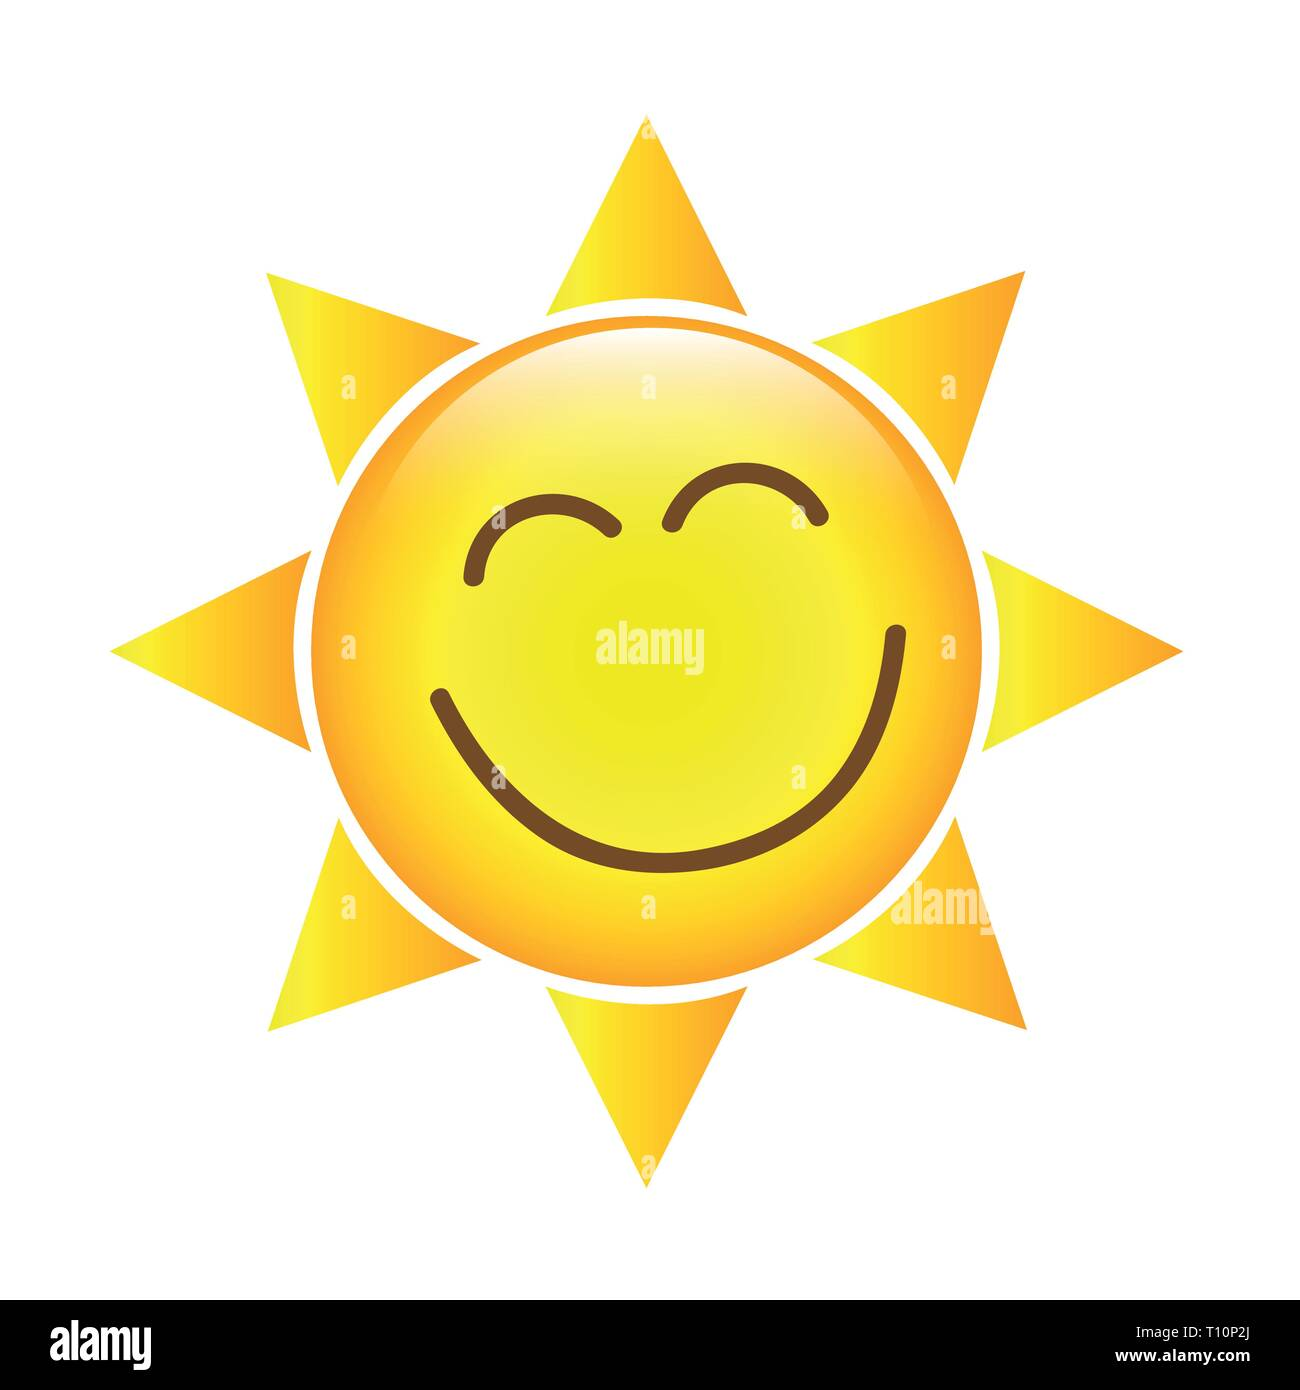 happy yellow sun face icon isolated on a white background vector illustration EPS10 - Stock Vector